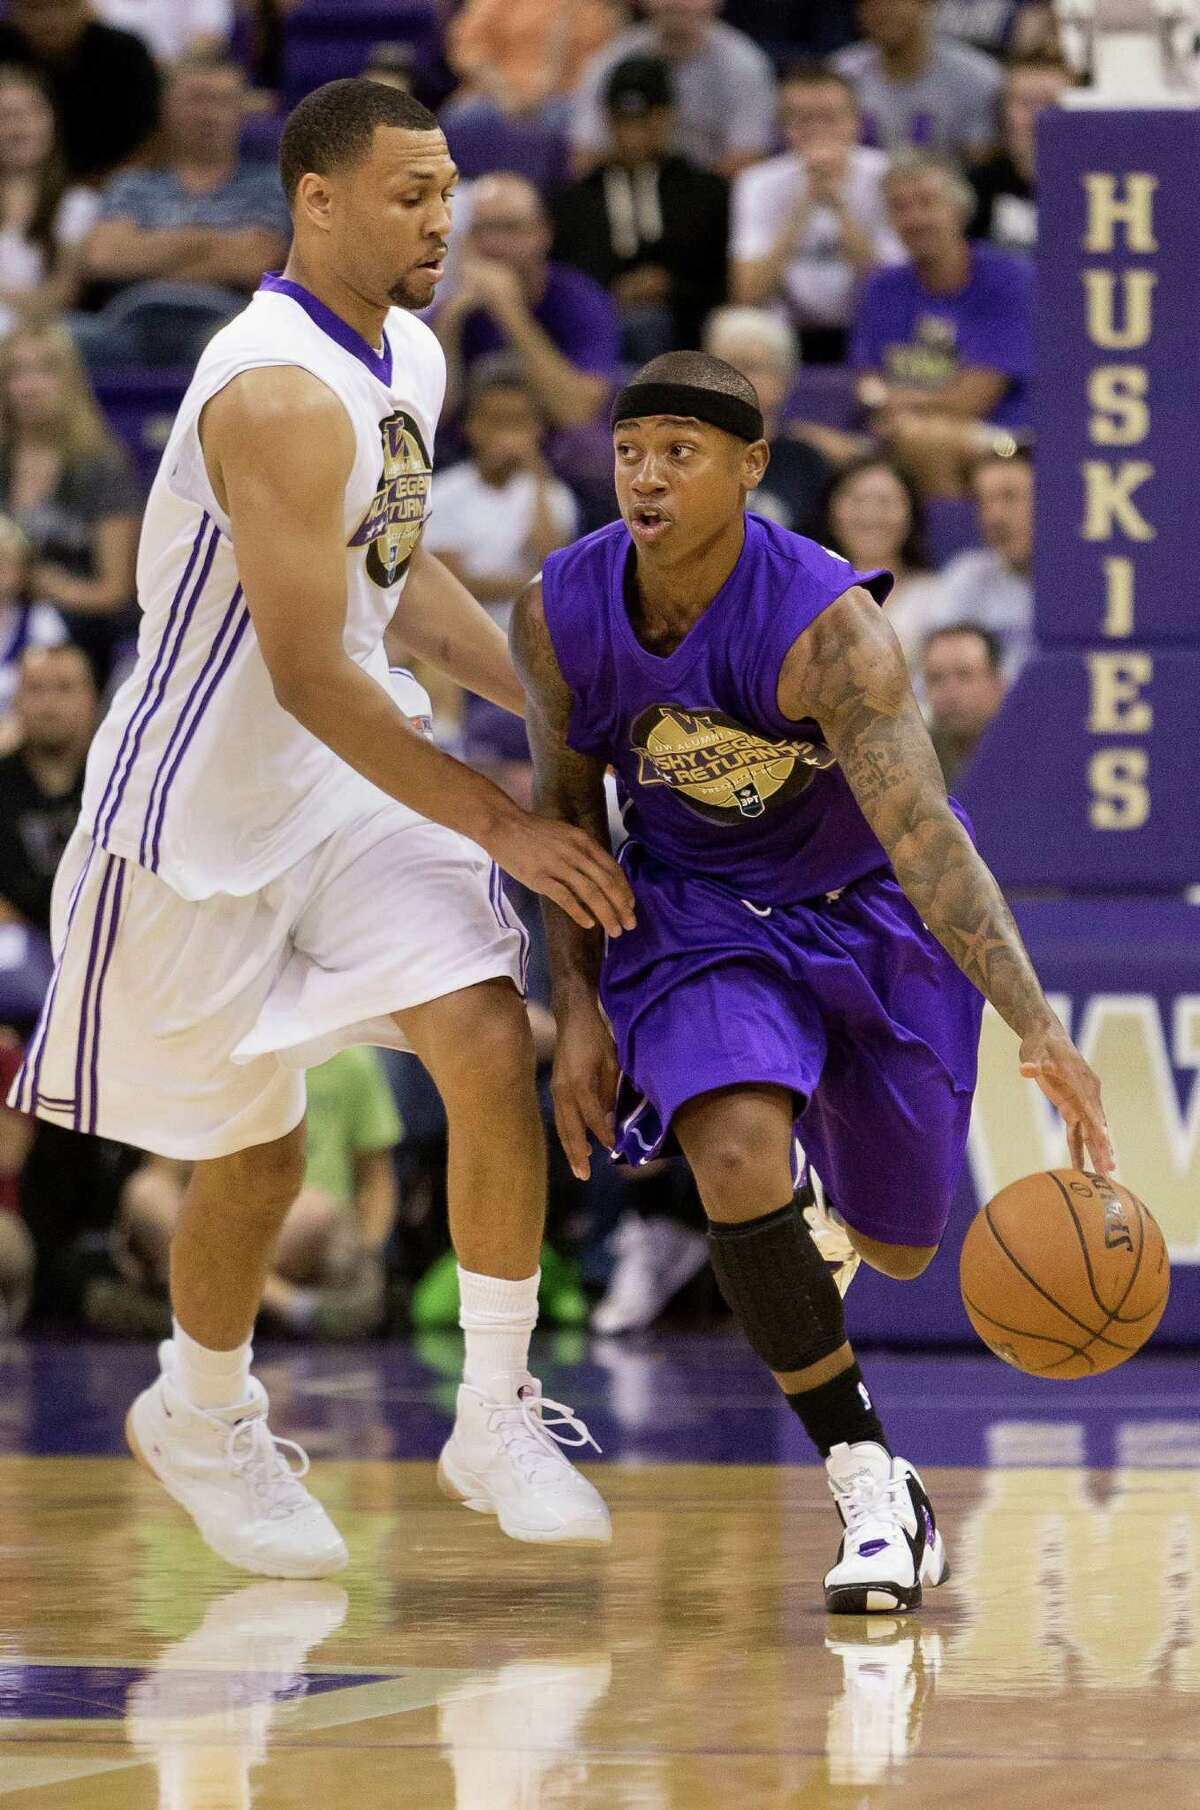 Isaiah Thomas, right, pushes past Brandon Roy, left, during the University of Washington Alumni Game Sunday, June 23, 2013, in the Alaska Airlines Arena at the University of Washington in Seattle, Wash. The after-2009 team, in purple, beat the pre-2009 team, in white, 107-104.